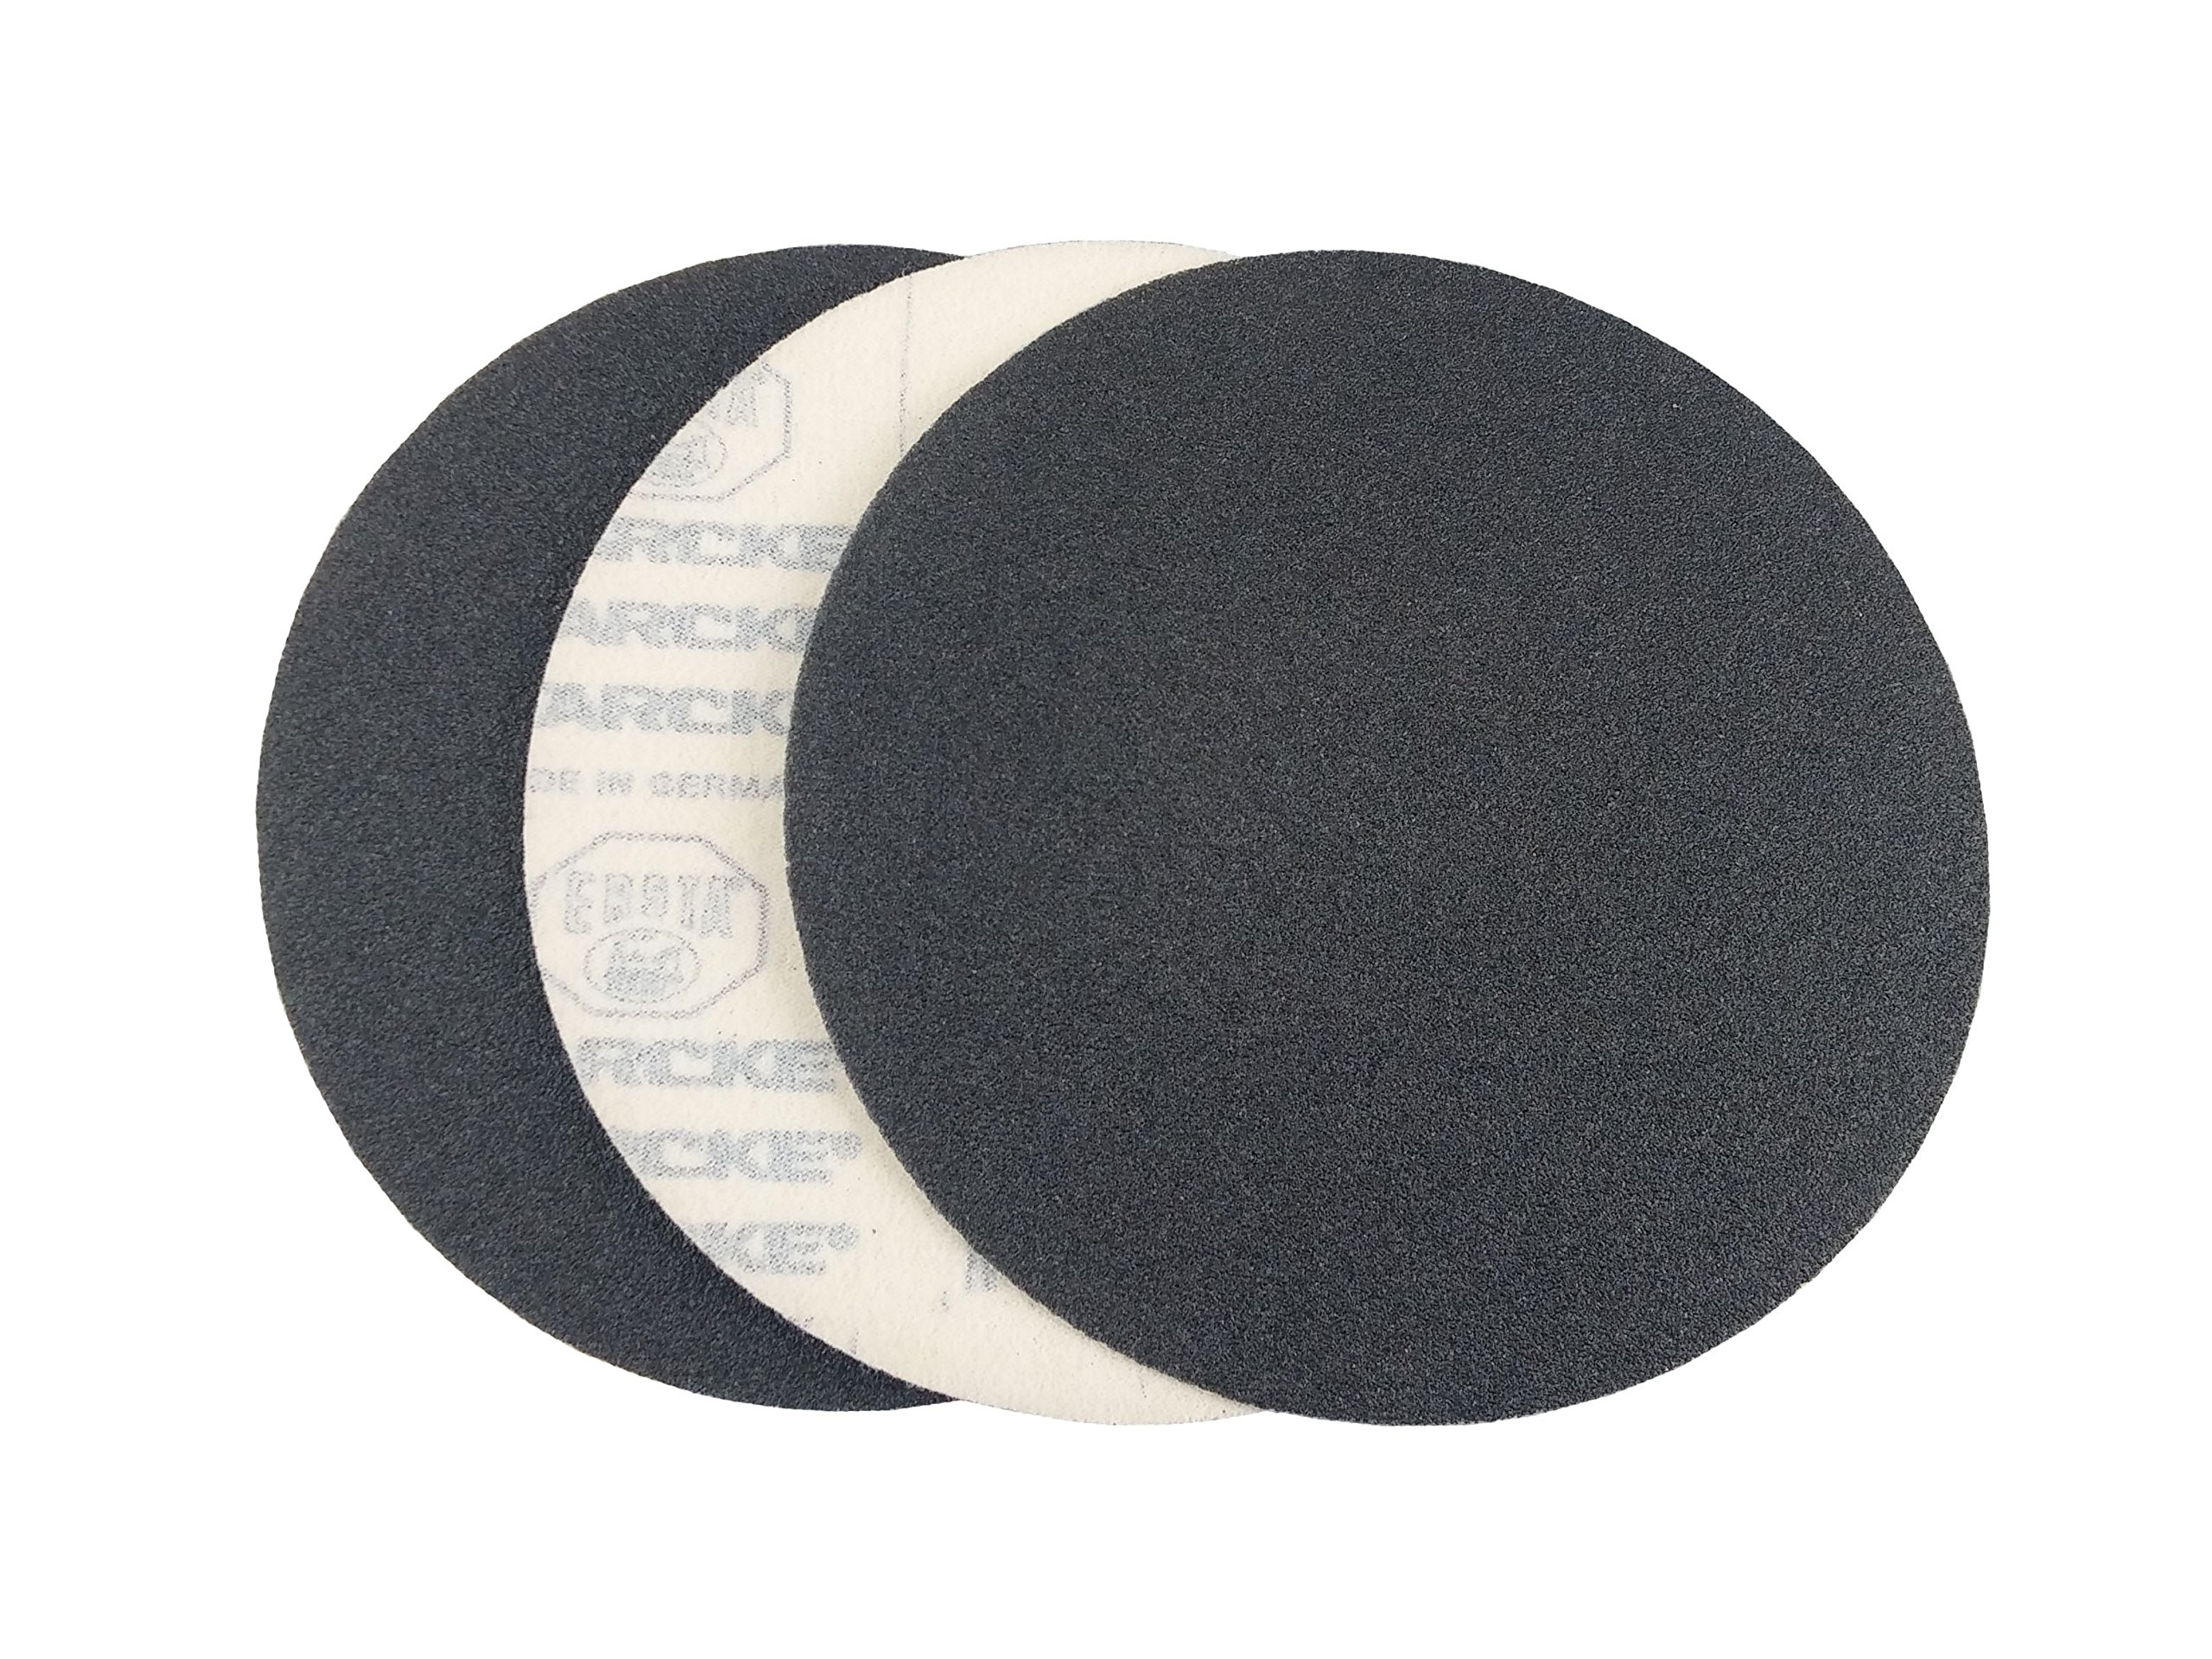 7'' Black Heavy Duty Hook and Loop Grip Sanding Discs (50 Pack, 80 Grit)